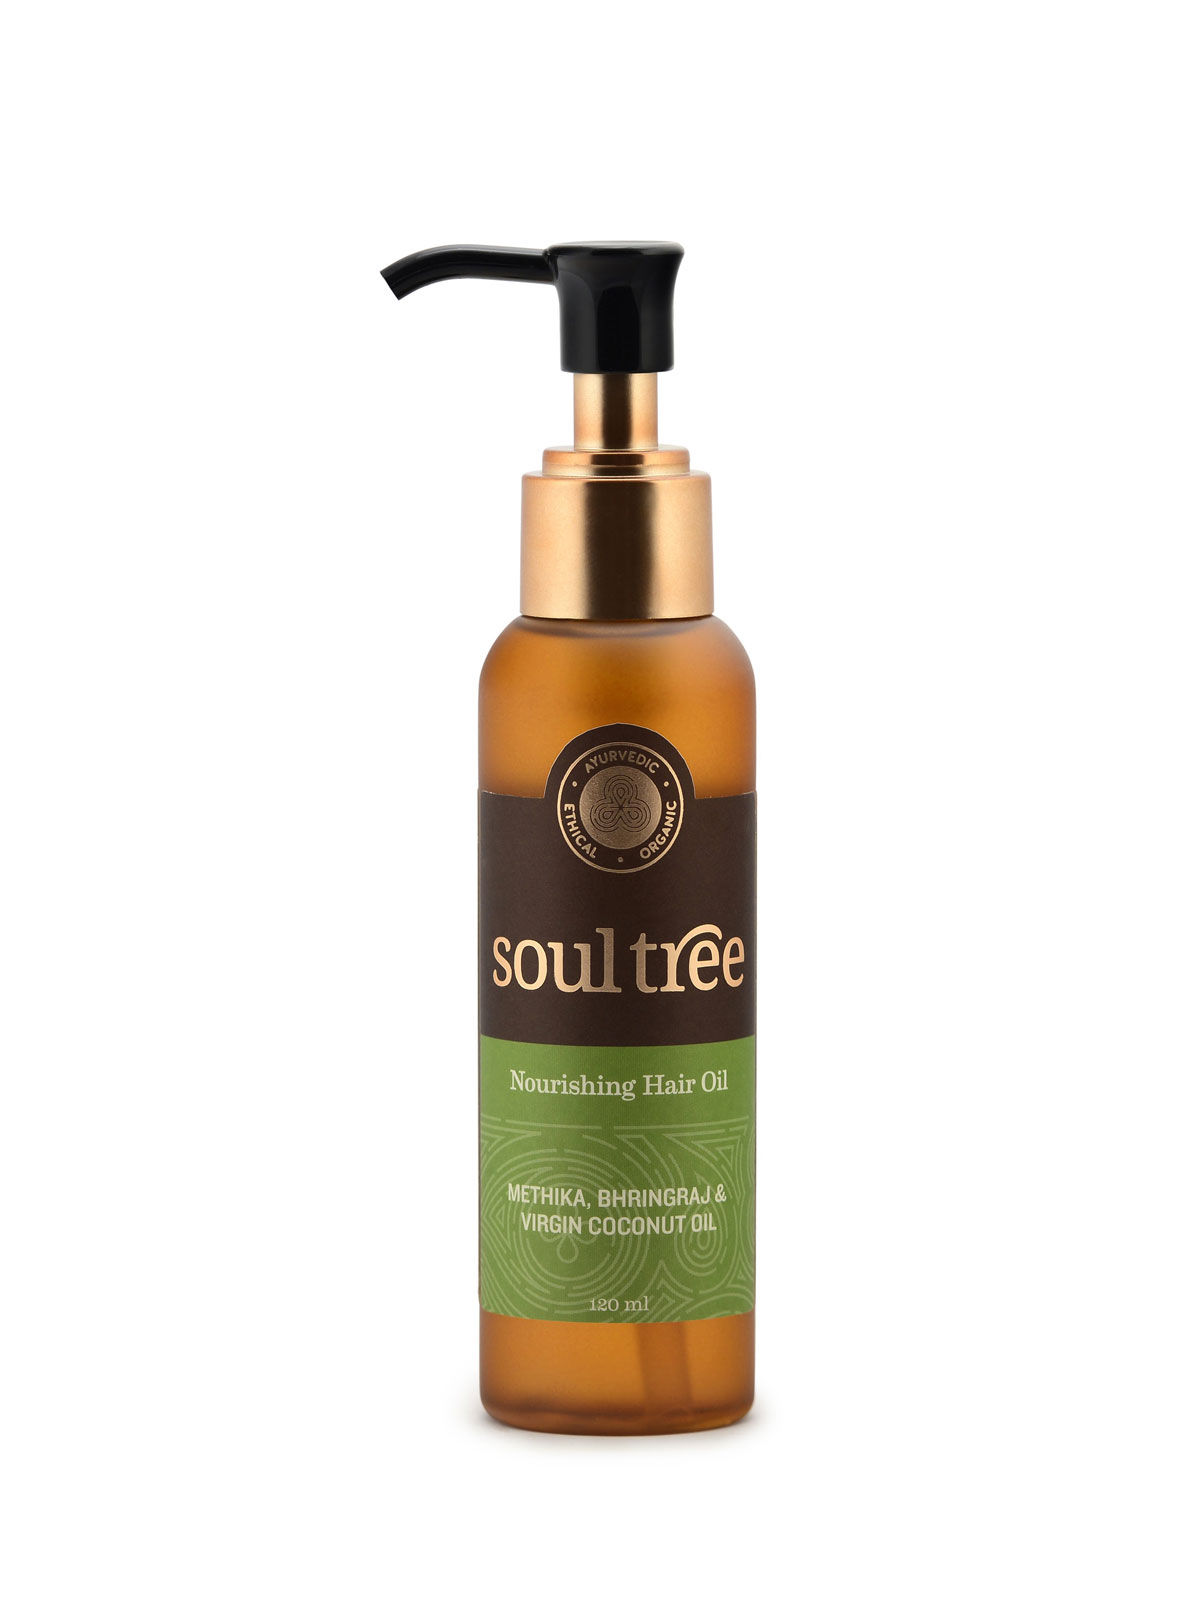 Soul Tree Nourishing Hair Oil